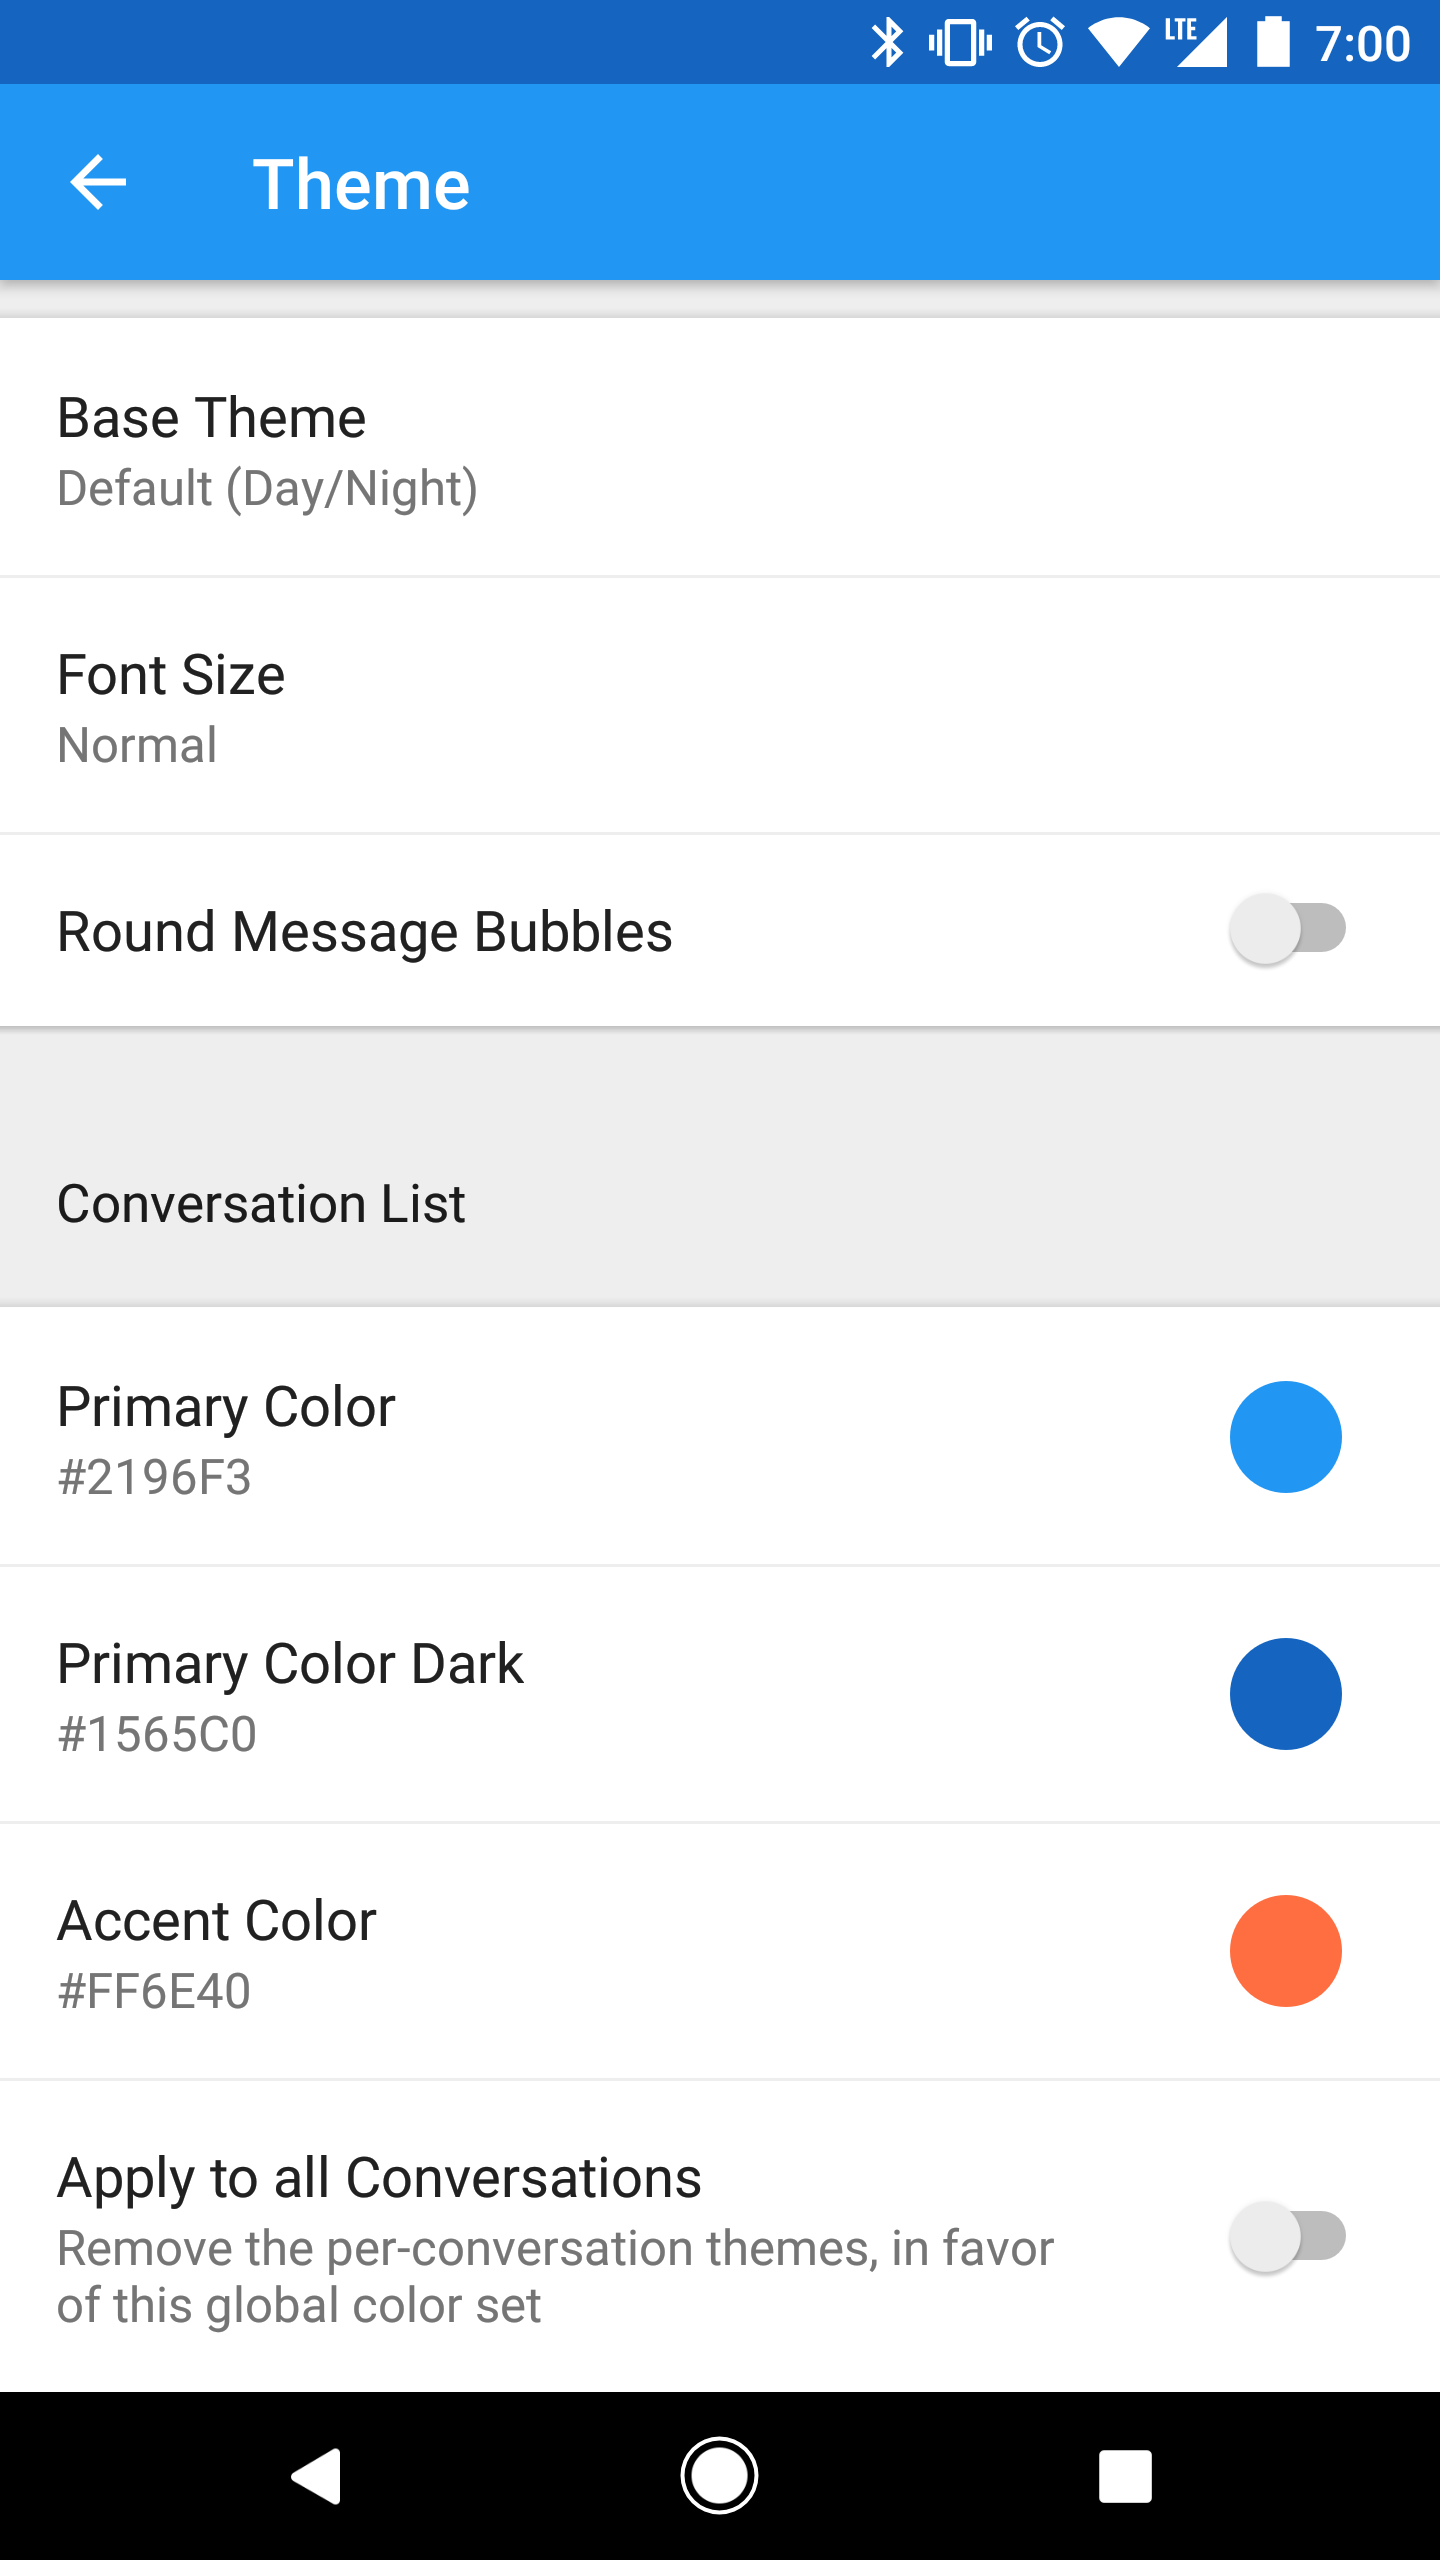 Pulse SMS v2 5 0 - Theming, Emojis, and More